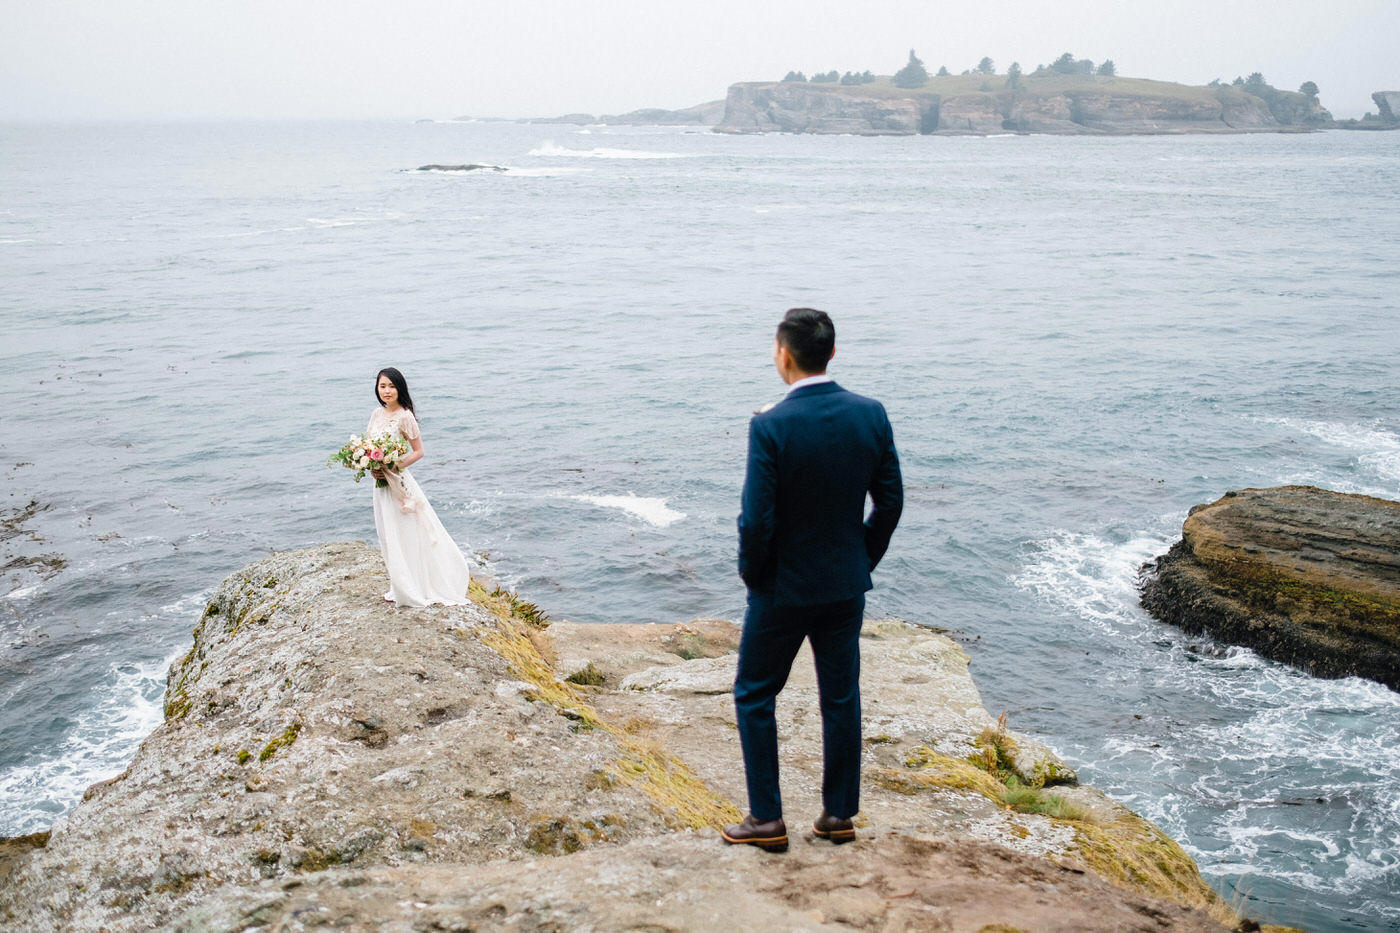 227-pacific-northwest-wedding-photography-by-ryan-flynn.jpg